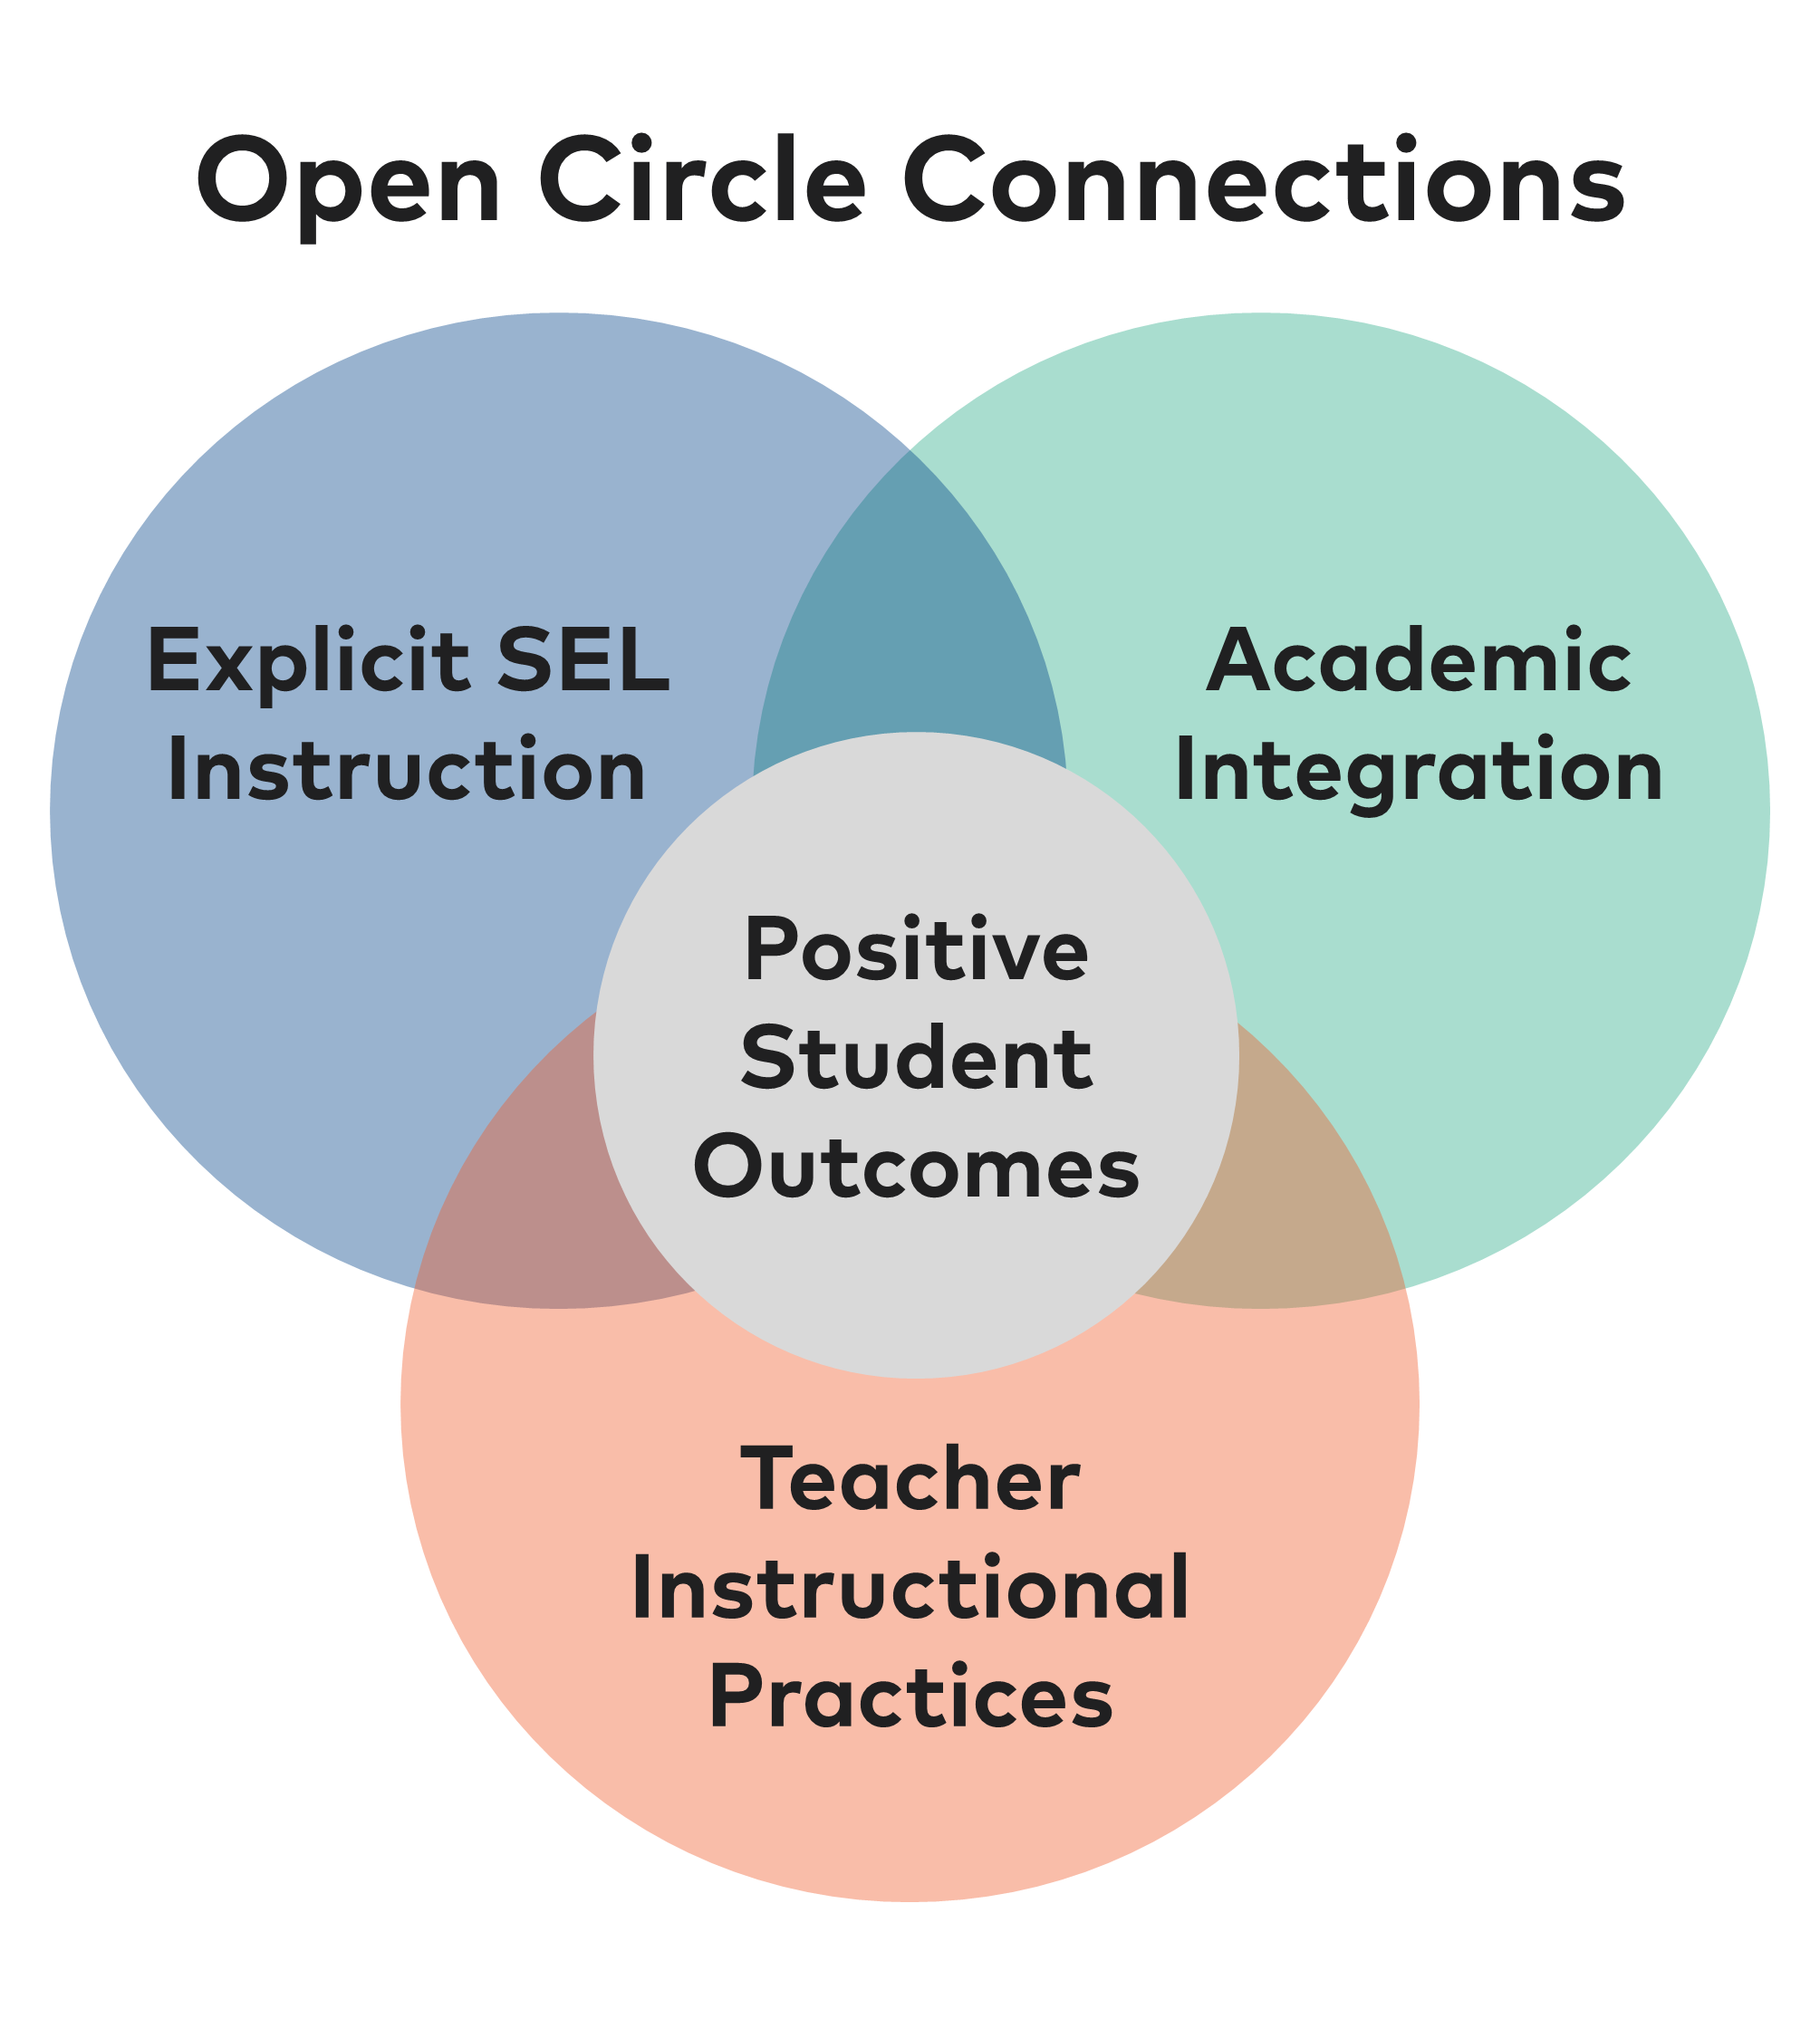 Open Circle Connections